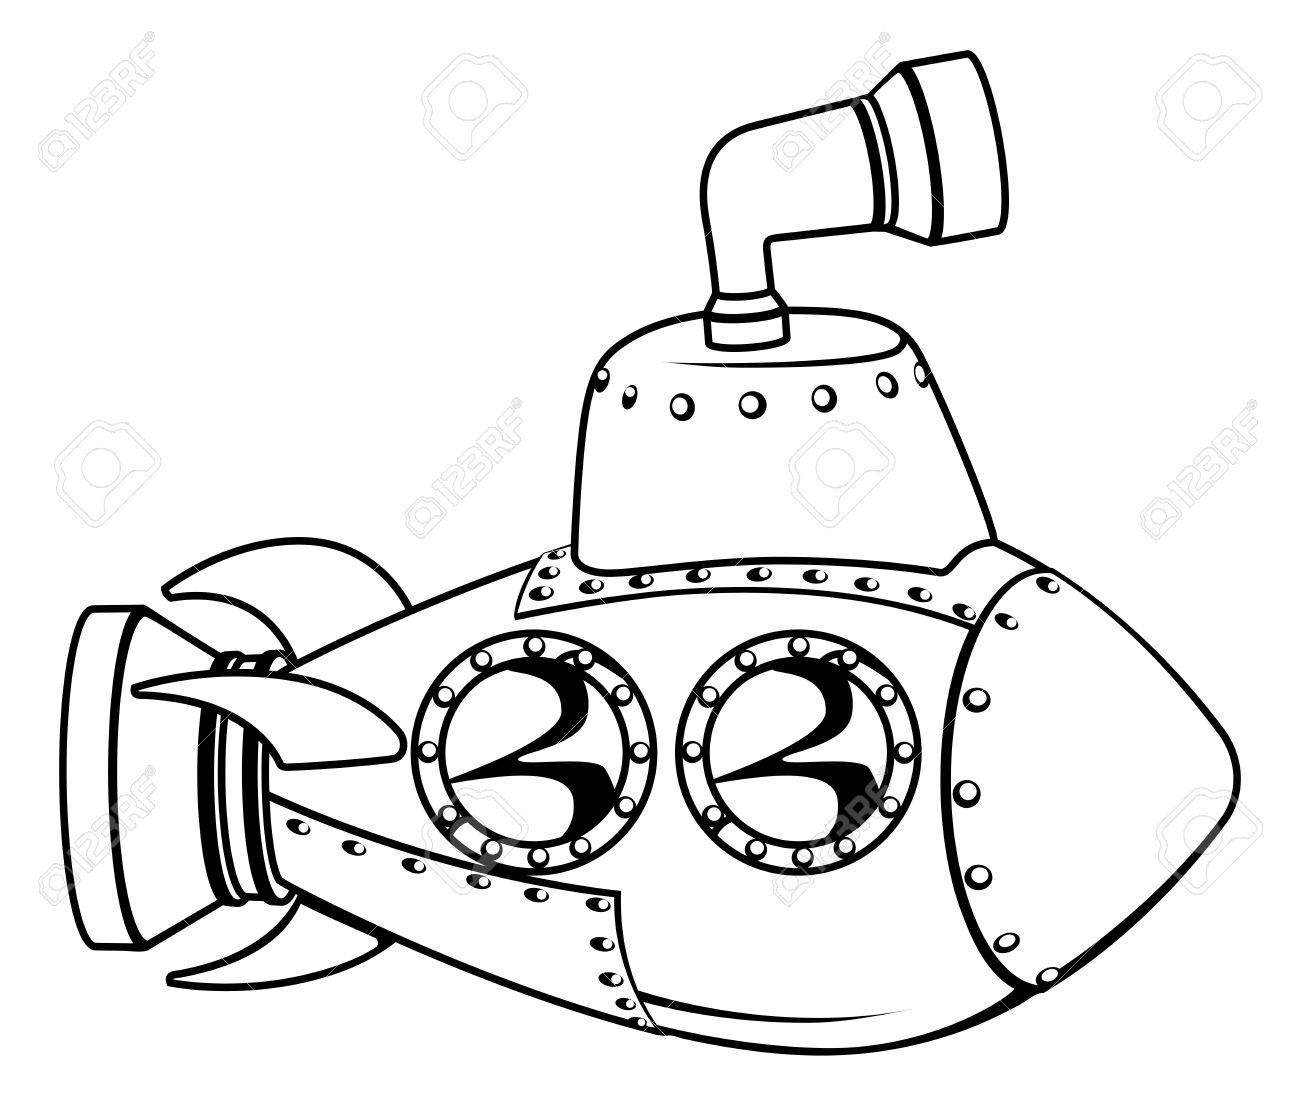 1300x1106 Illustration Of A Cute Cartoon Submarine In Black And White